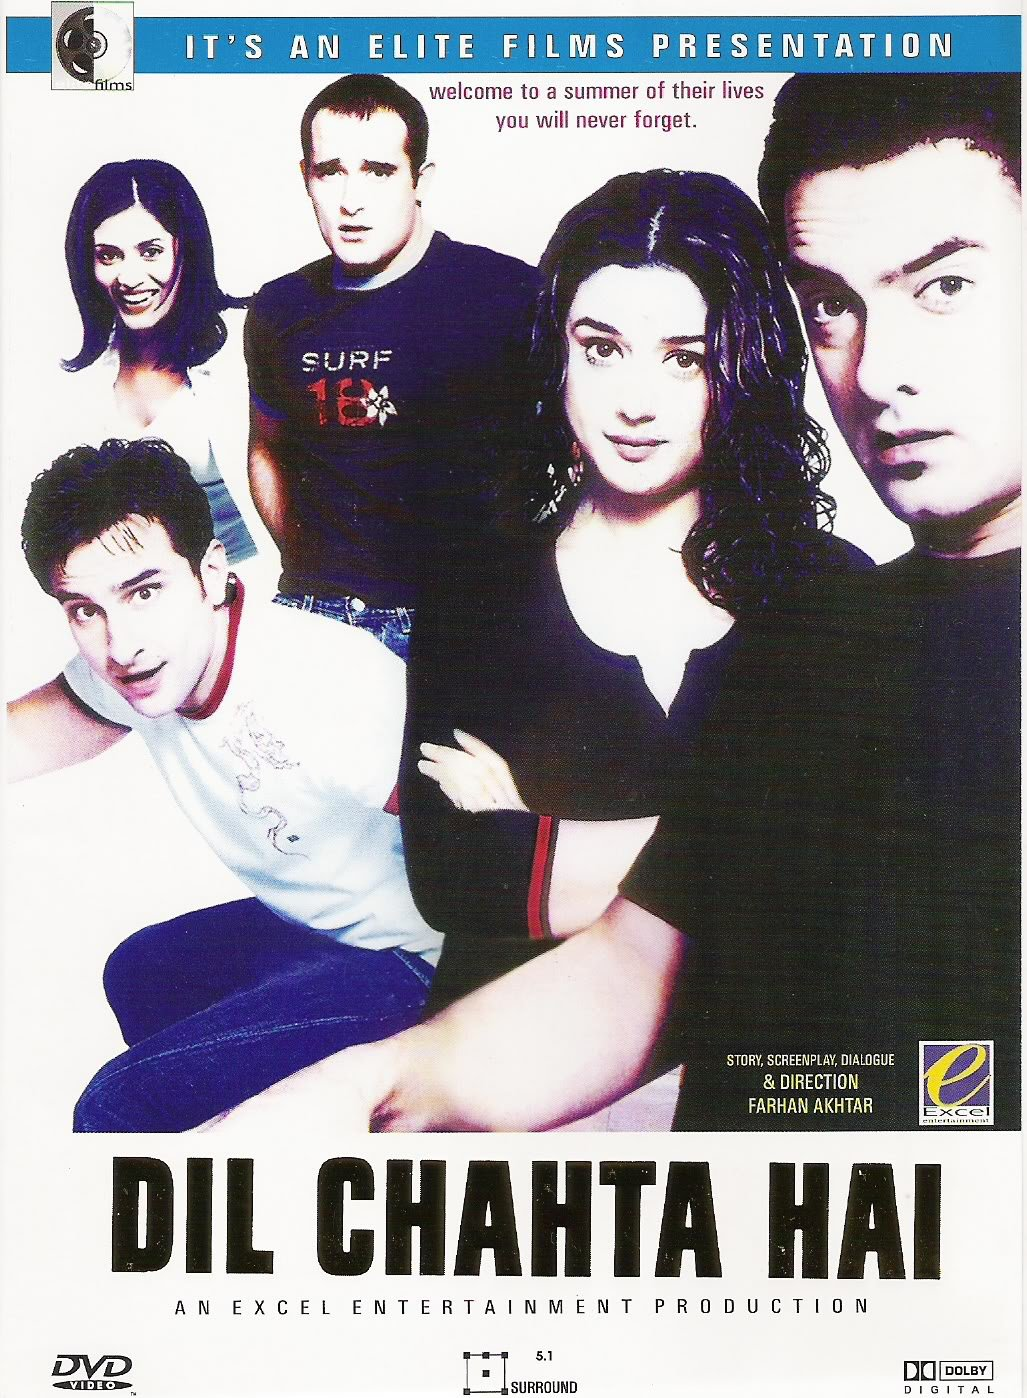 dil chahta hai old best movie of bollywood